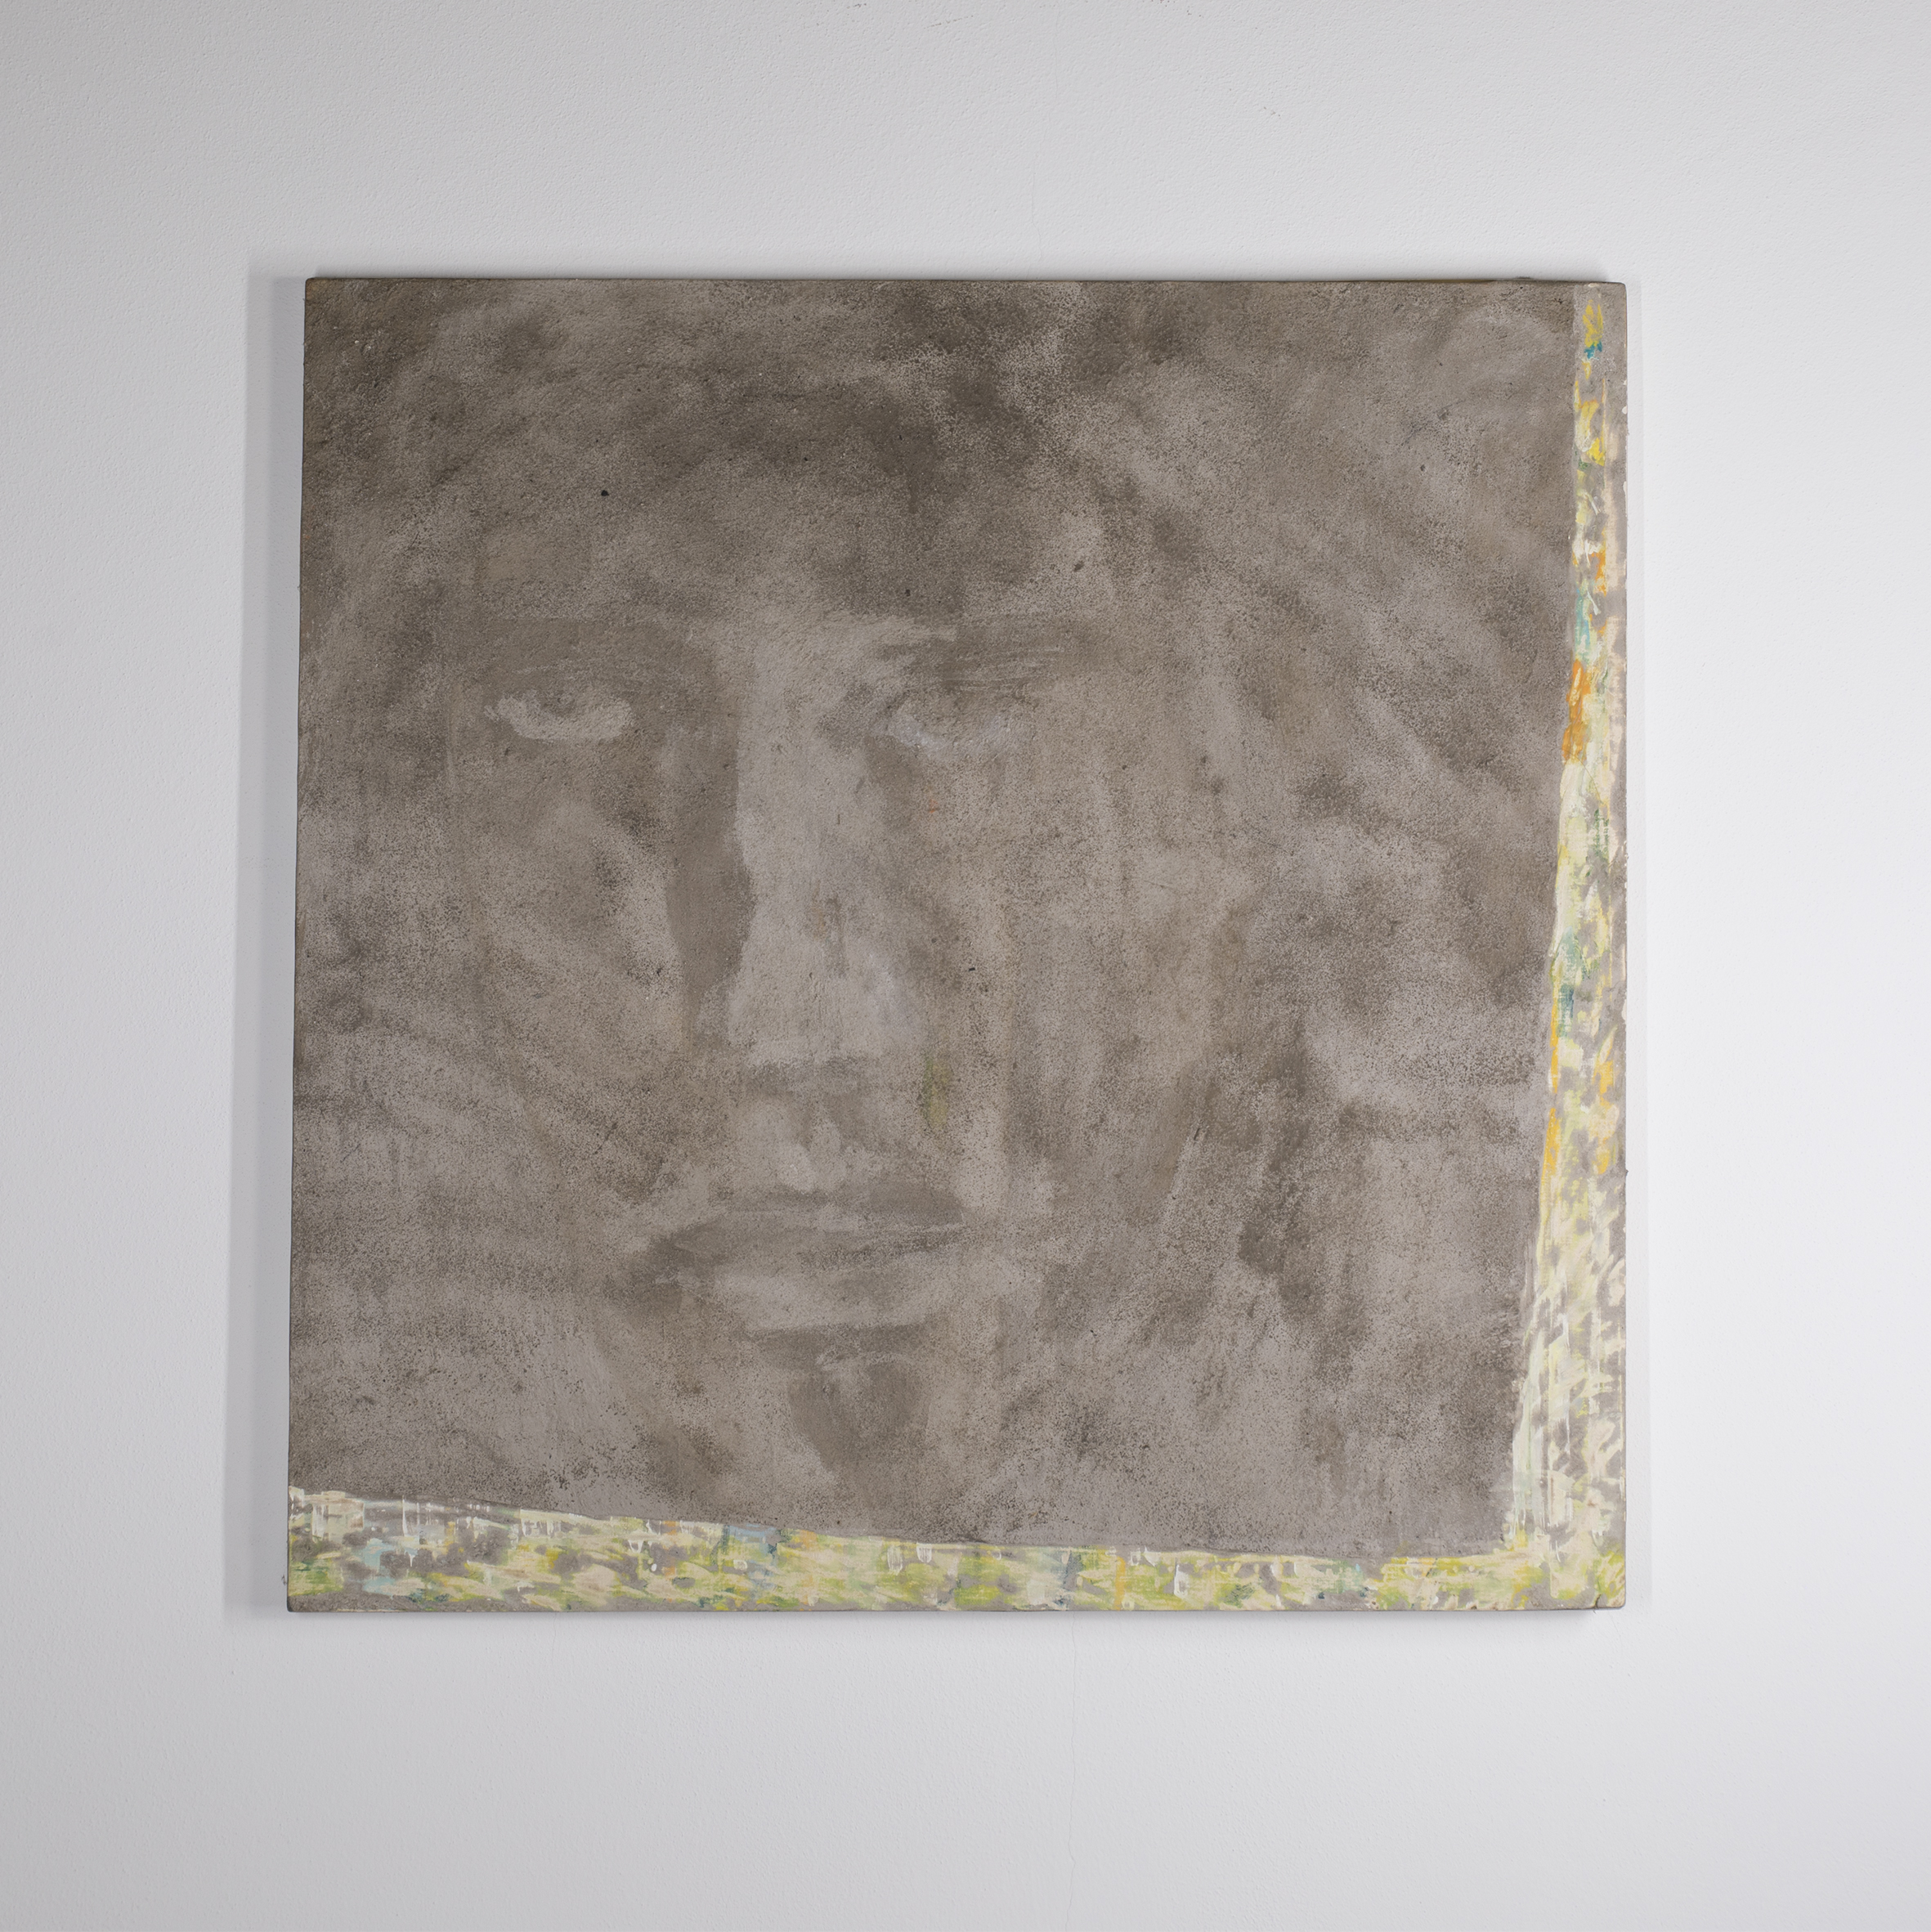 cenere2 - works painting 1974-1988